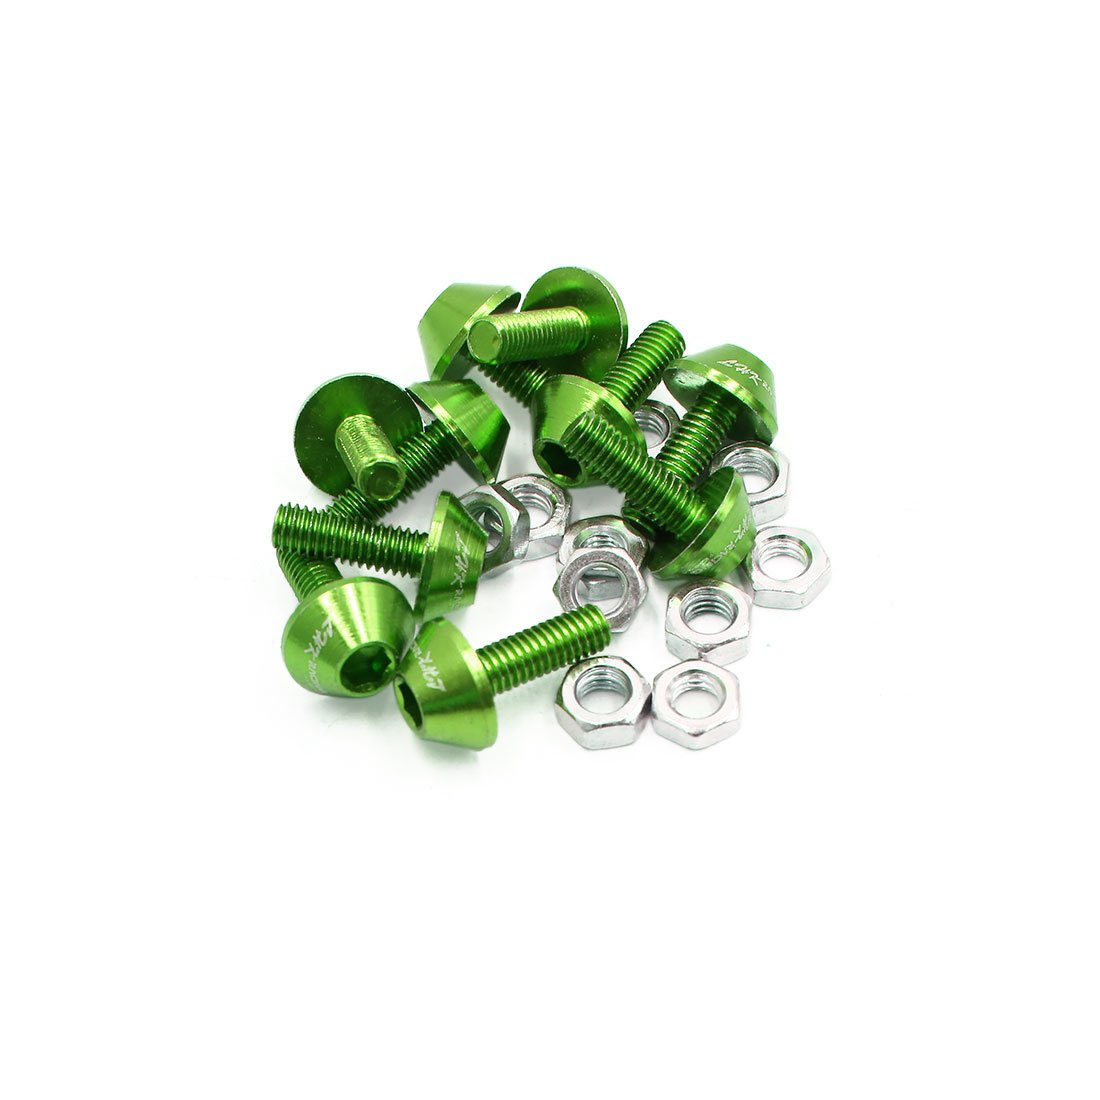 Uxcell a17061900ux1499 10Pcs 6mm Dia Aluminum Alloy Hex Socket Head Motorcycle Bolts Screws Nuts Green, 10 Pack